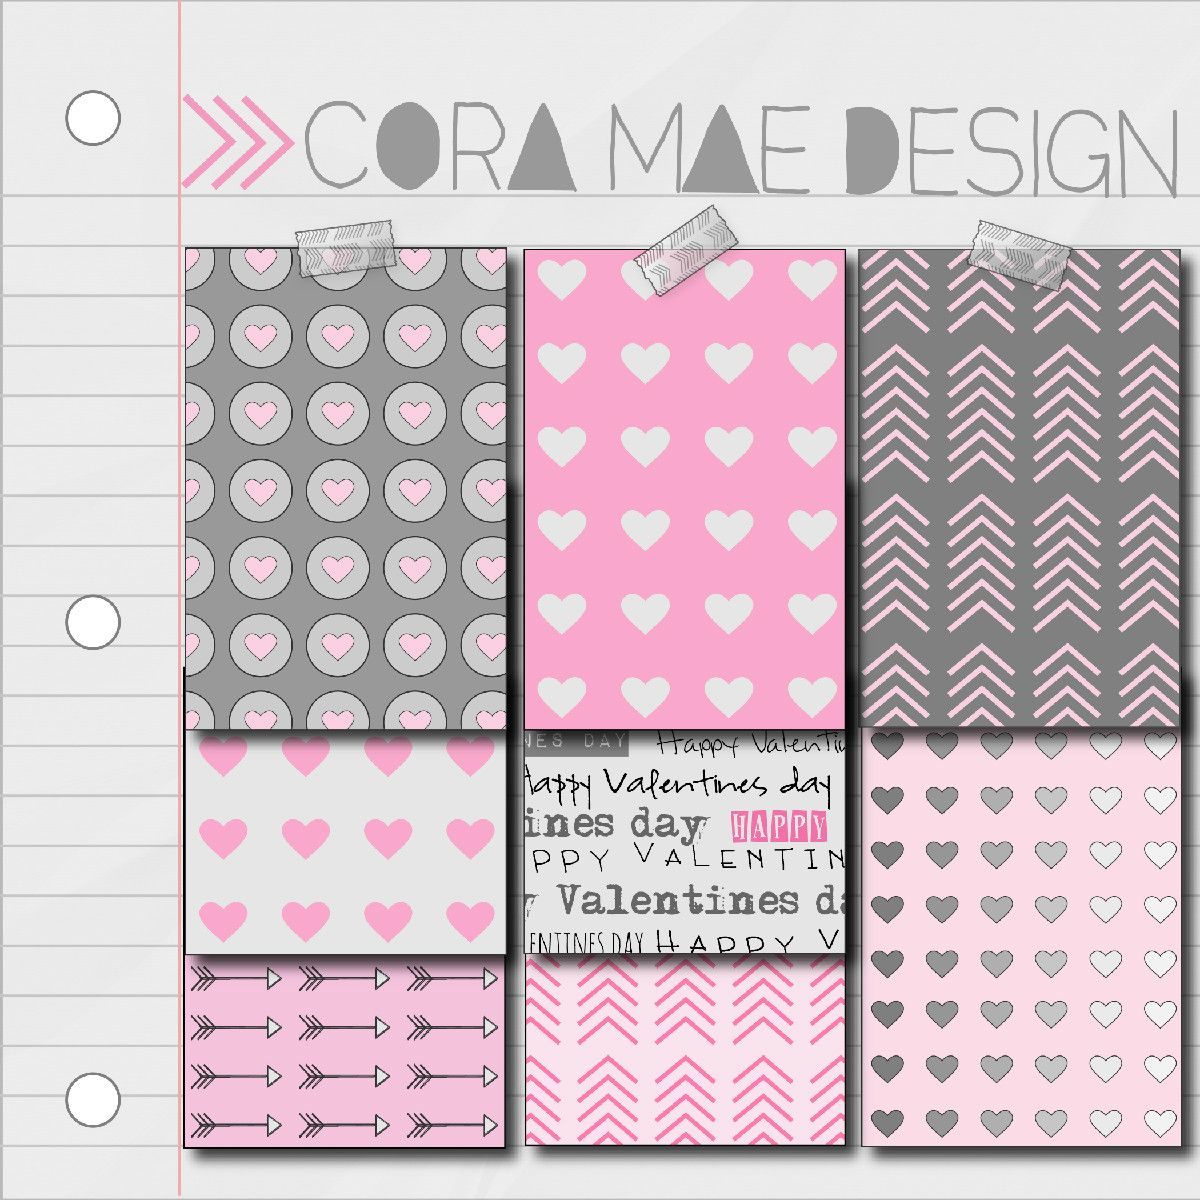 FREE VALENTINES DIGITAL PATTERNS & IPHONE WALLPAPERS